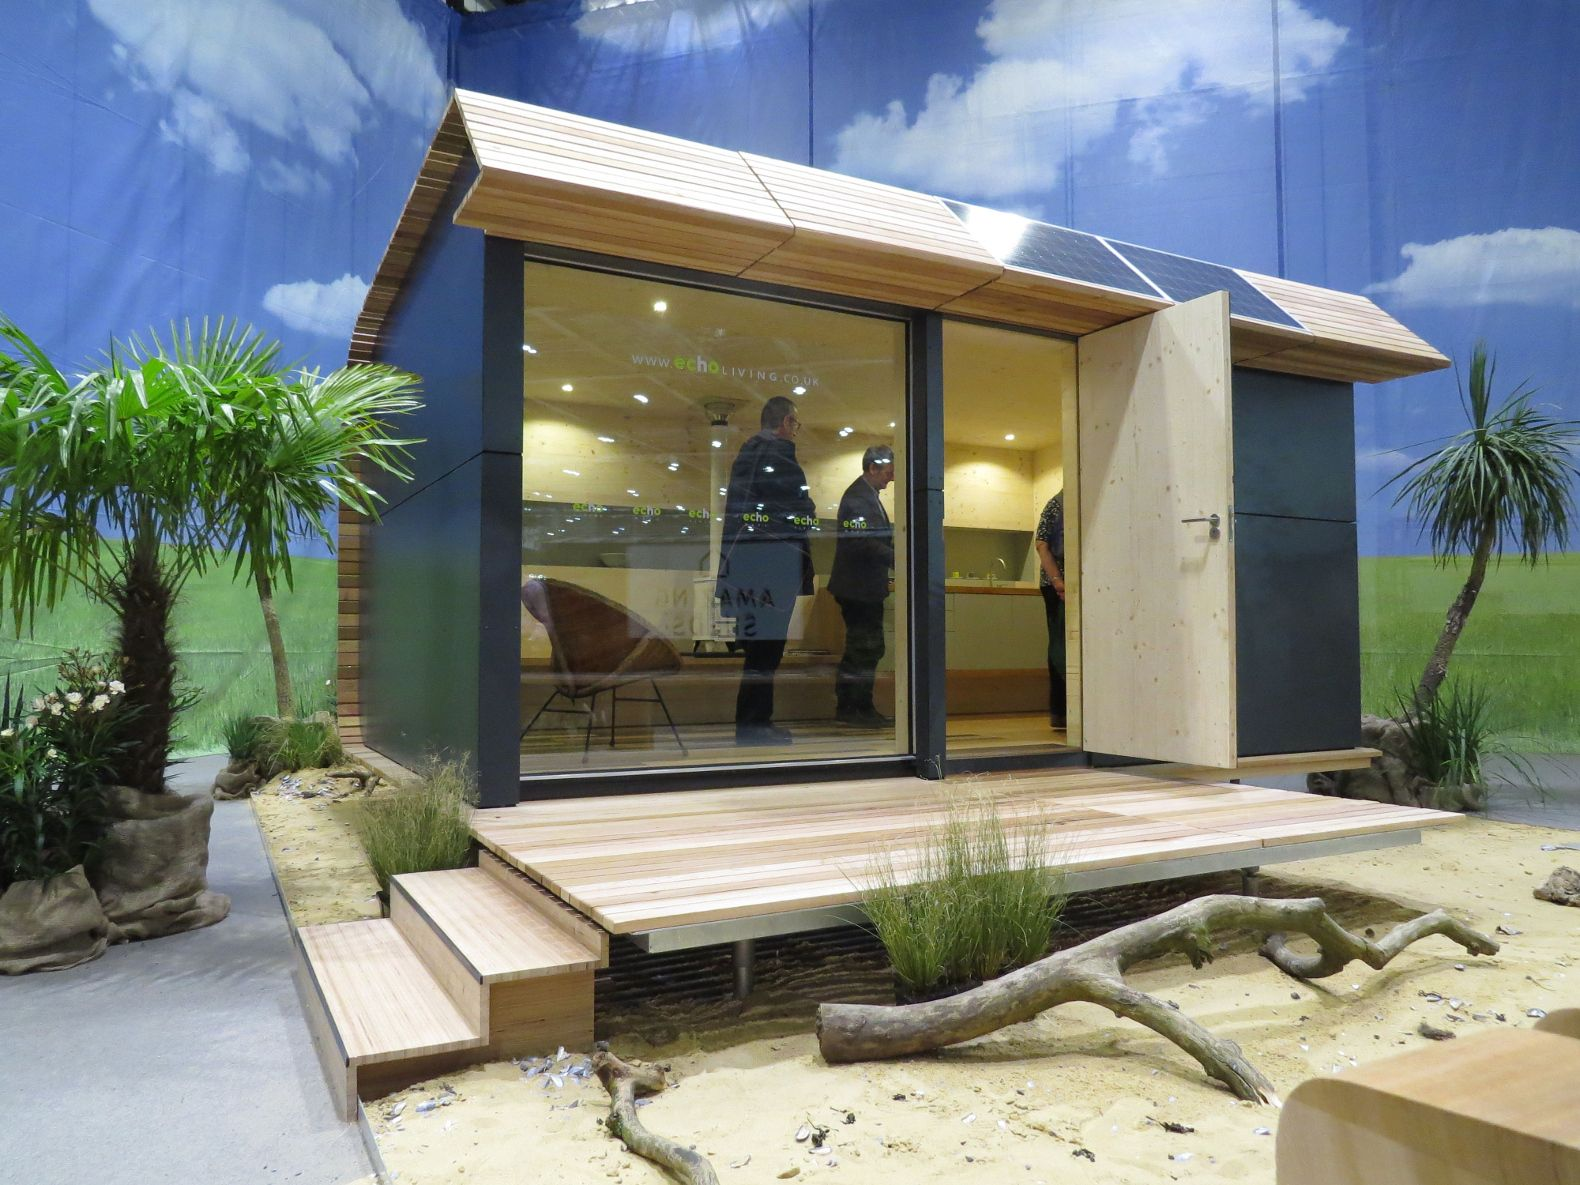 Get Off The Grid In Style With The Tiny Solar Powered Wave Eco Cabin